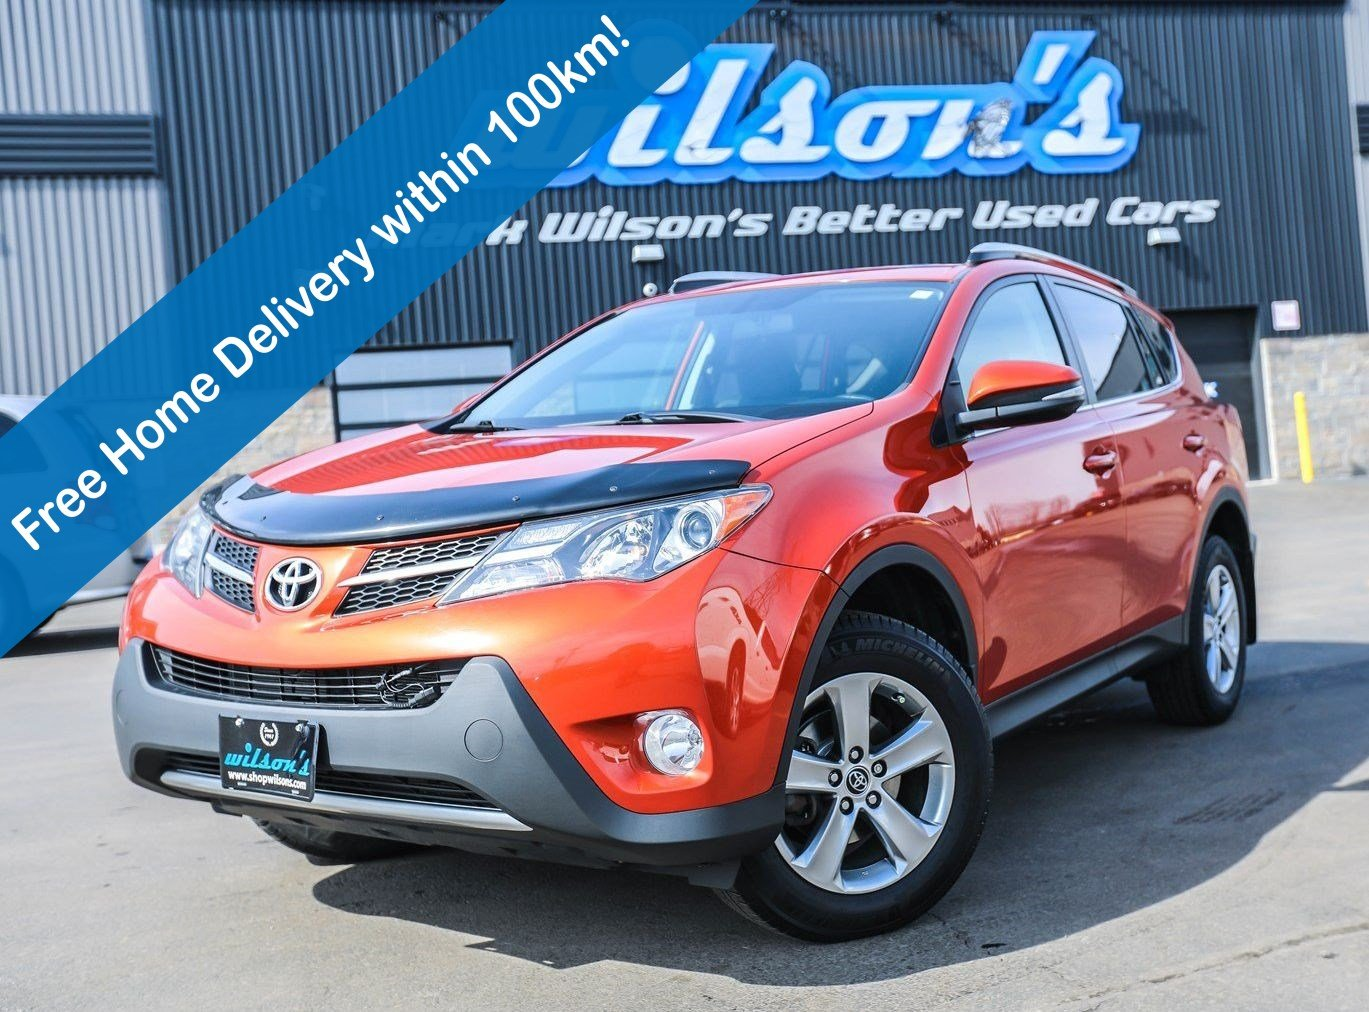 Certified Pre-Owned 2015 Toyota RAV4 XLE AWD, Sunroof, Heated Seats, Rear Camera, Bluetooth, Alloy Wheels and more!